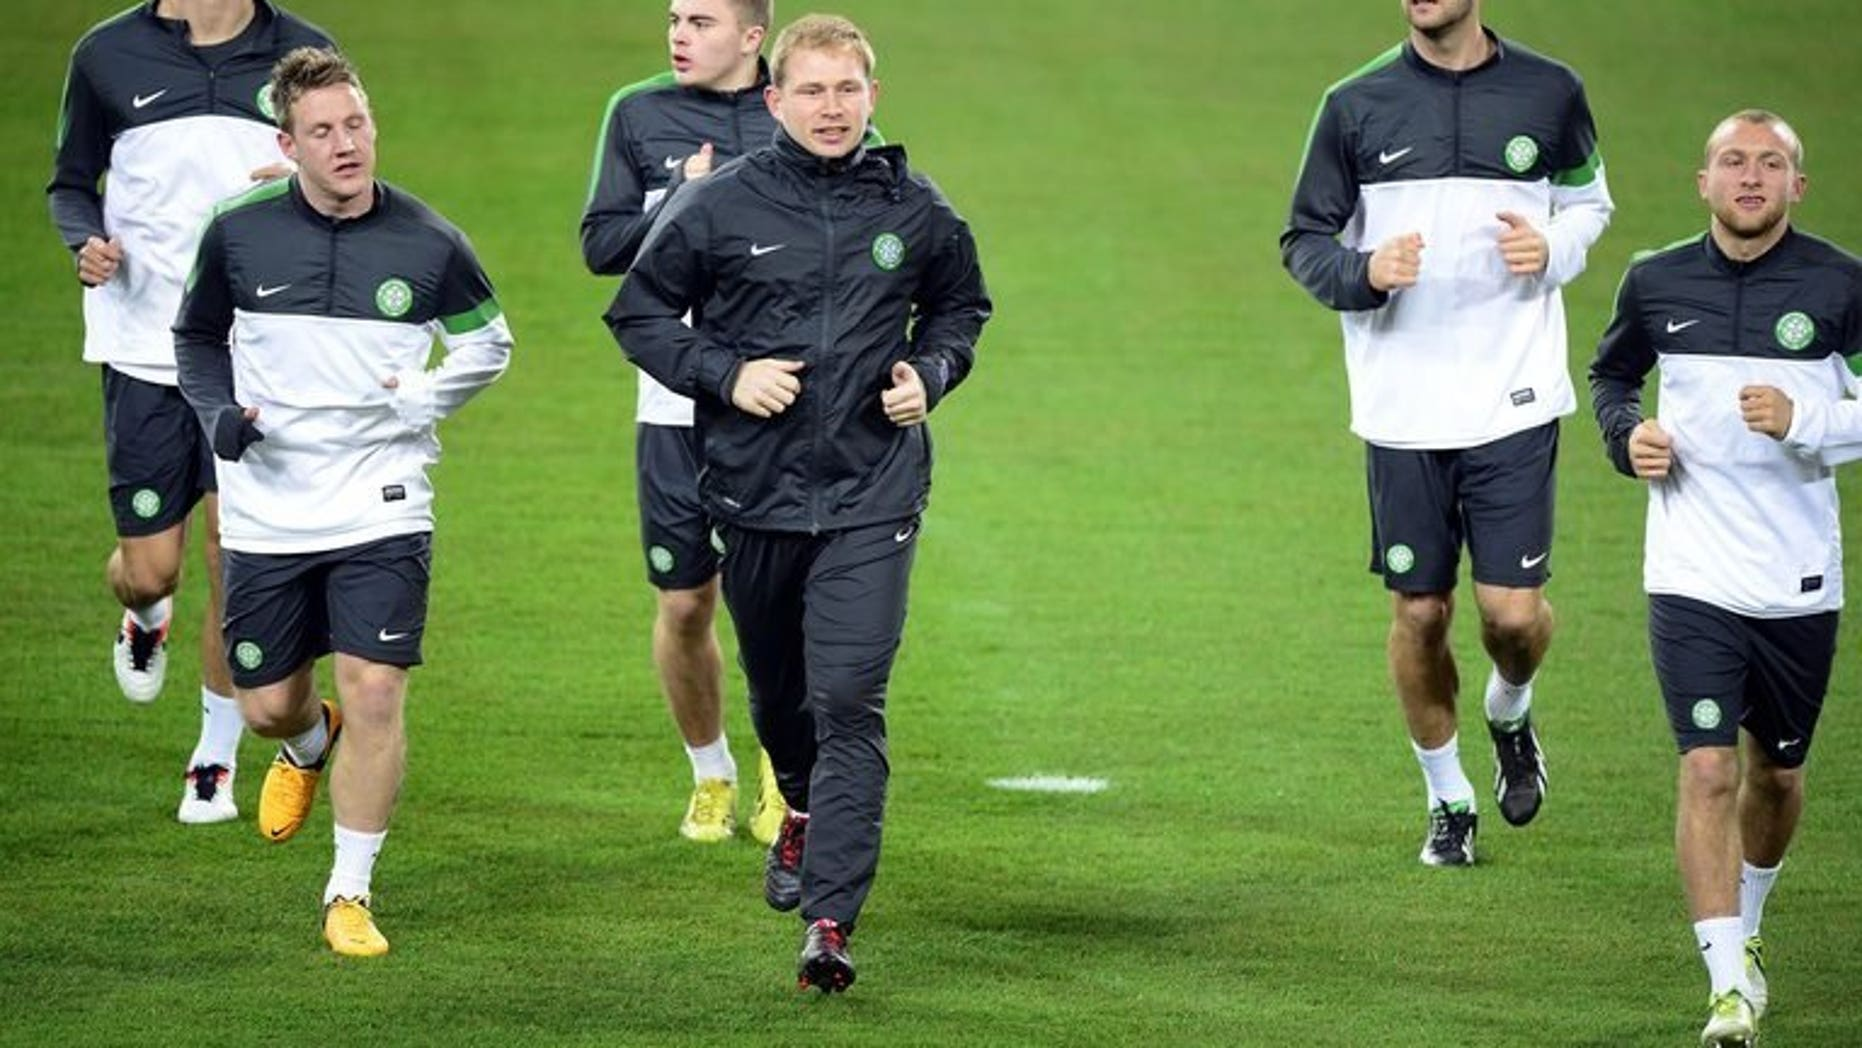 Celtic players warm up during a training session in Turin on March 5, 2013. Celtic will start the season as overwhelming favourites to capture the inaugural Scottish Premiership crown after cantering to the title last year.